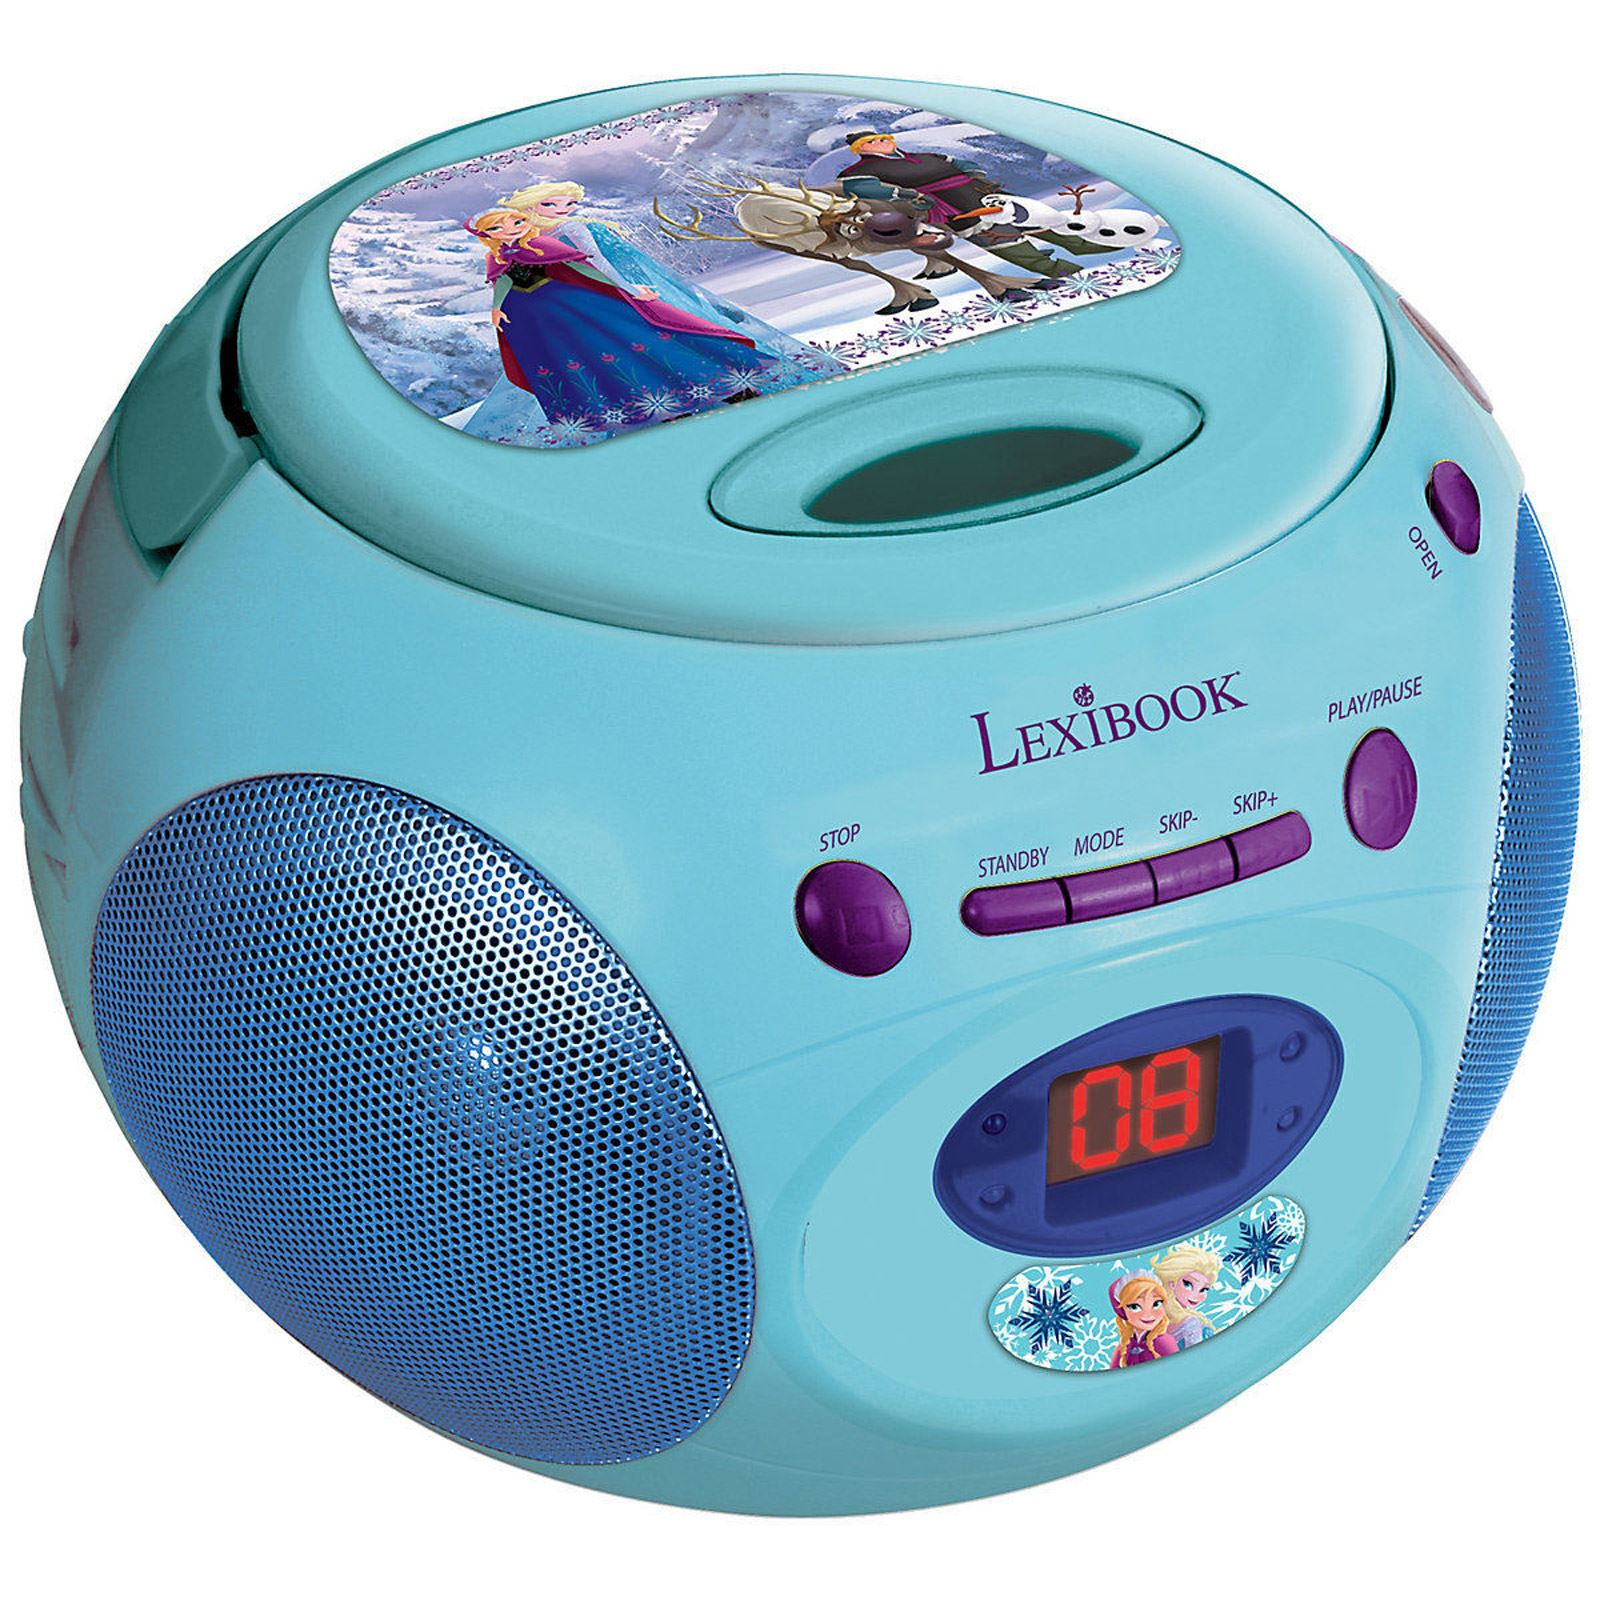 disney frozen radio cd player new by lexibook kids ebay. Black Bedroom Furniture Sets. Home Design Ideas